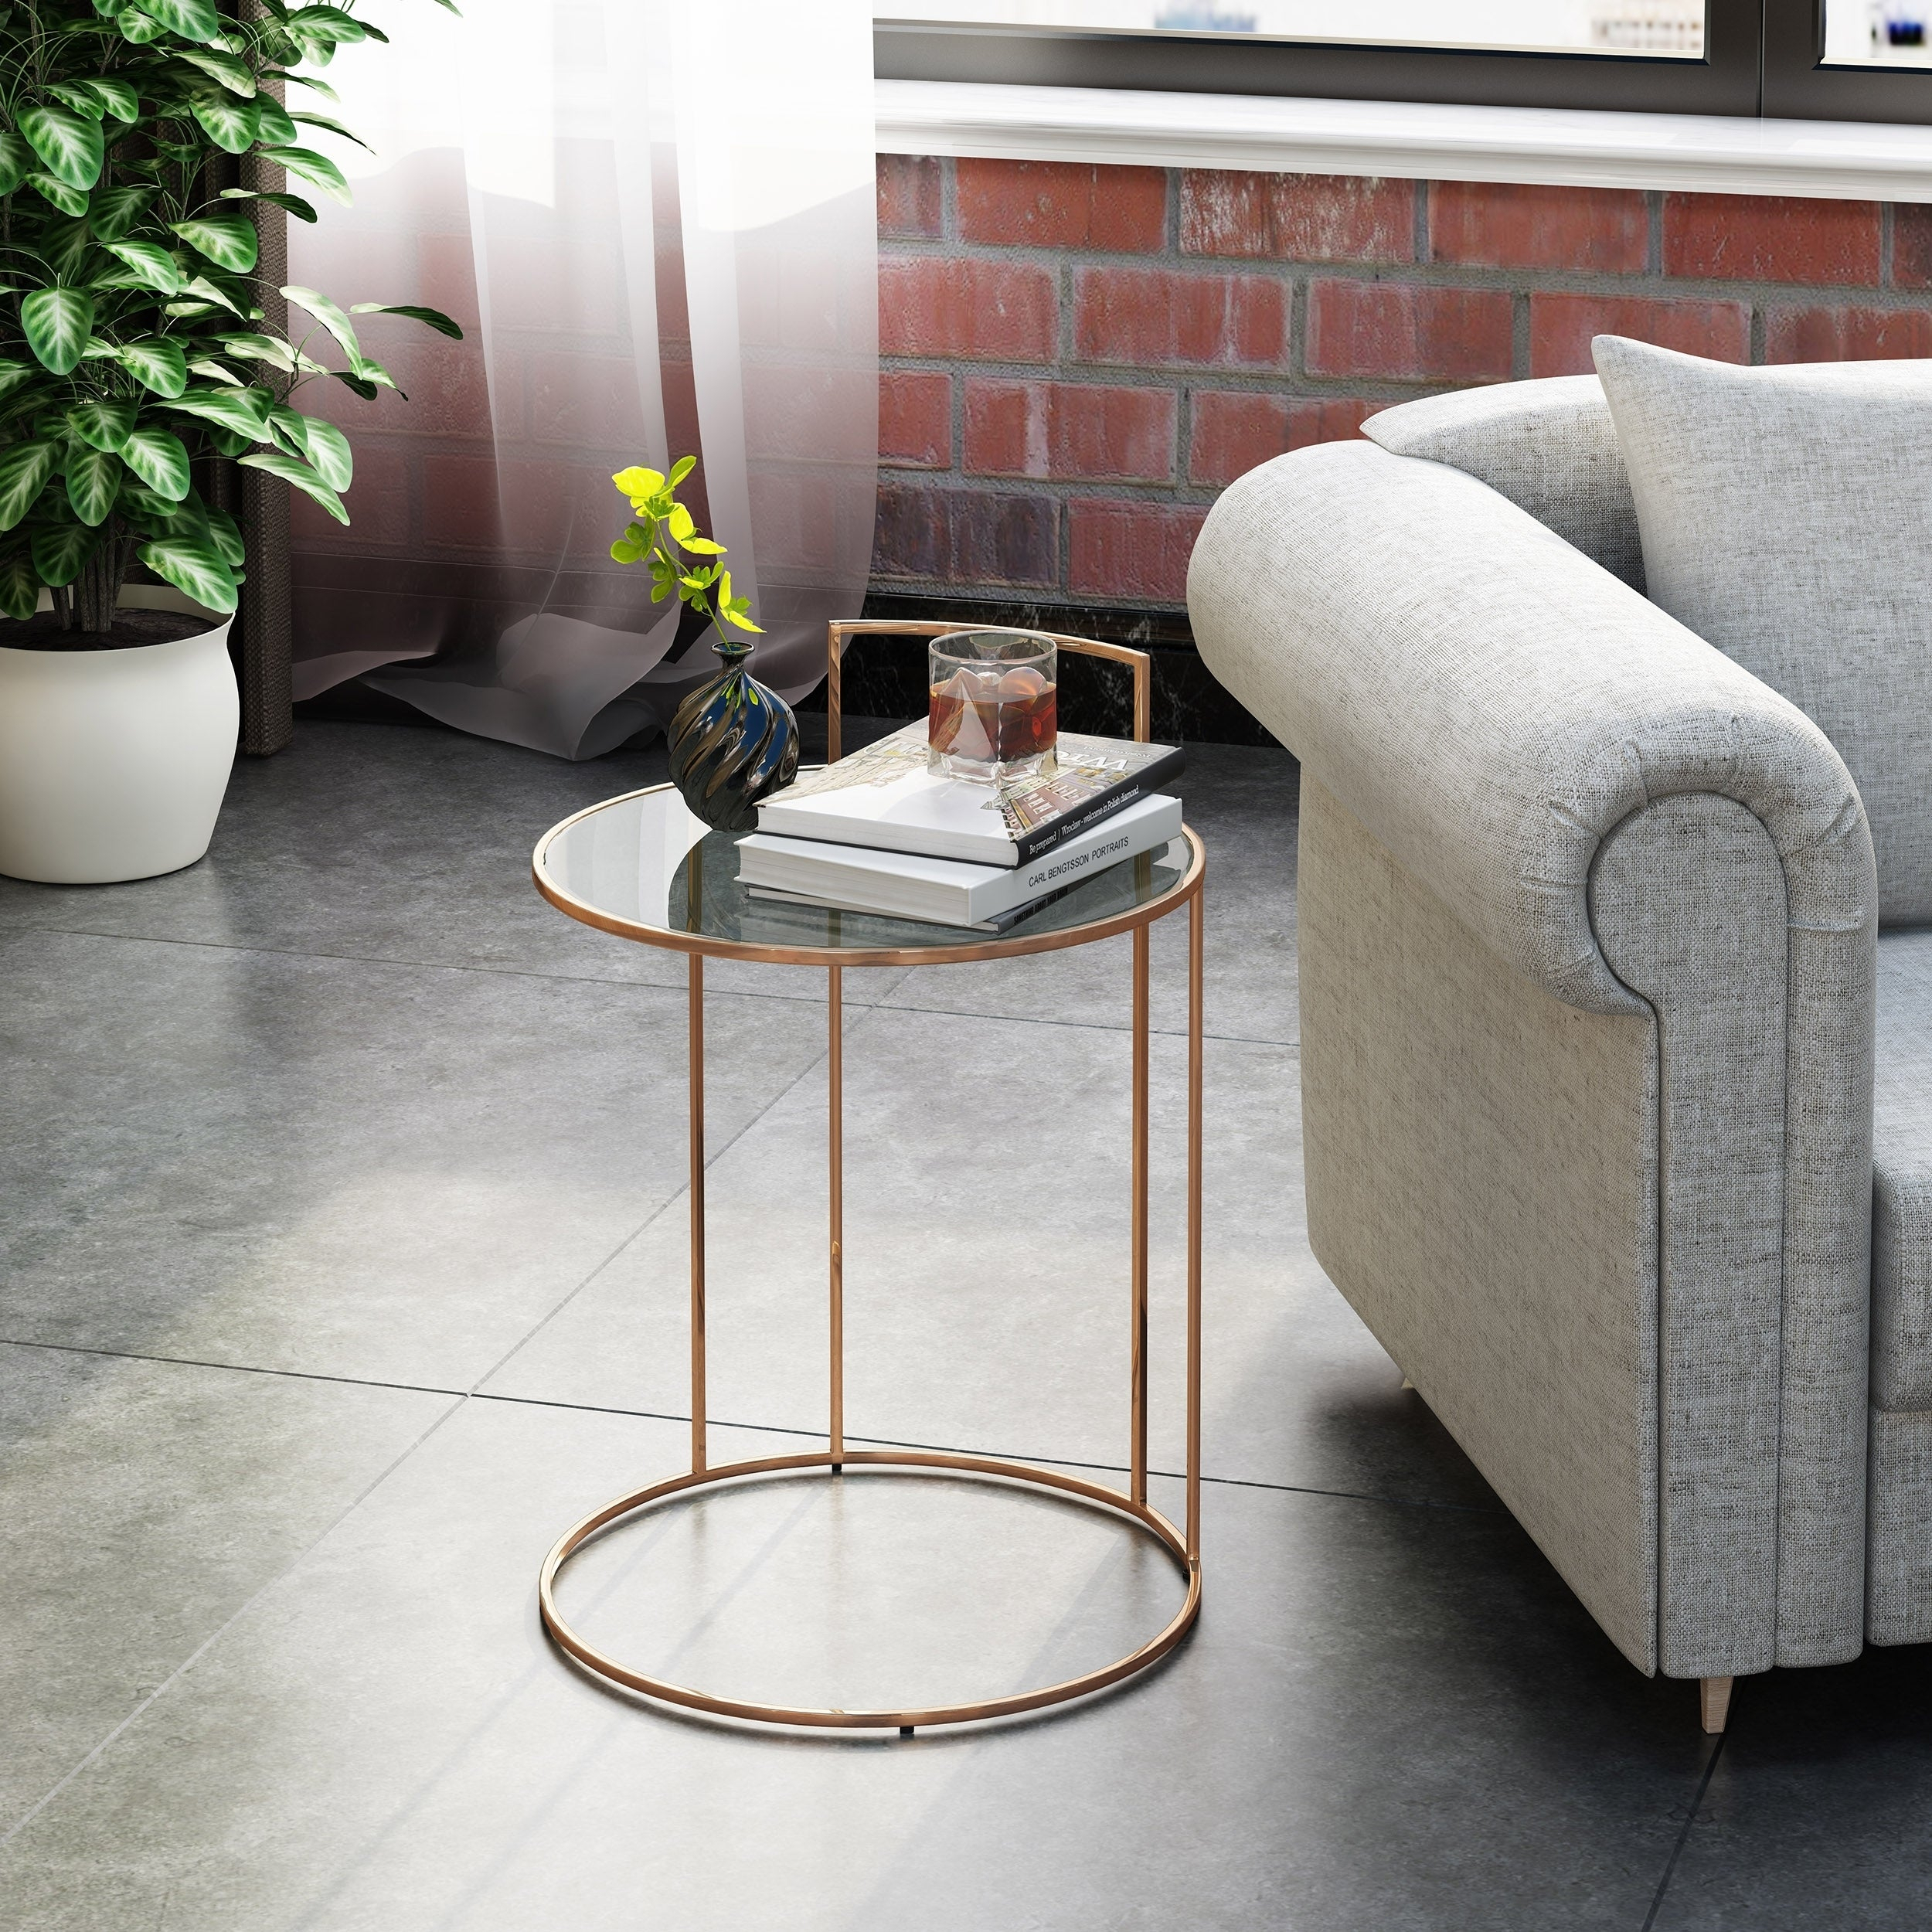 Christopher Knight Home Isolde Glam Tempered Glass Side Table Pertaining To Recent Isolde 3 Piece Dining Sets (Image 5 of 20)